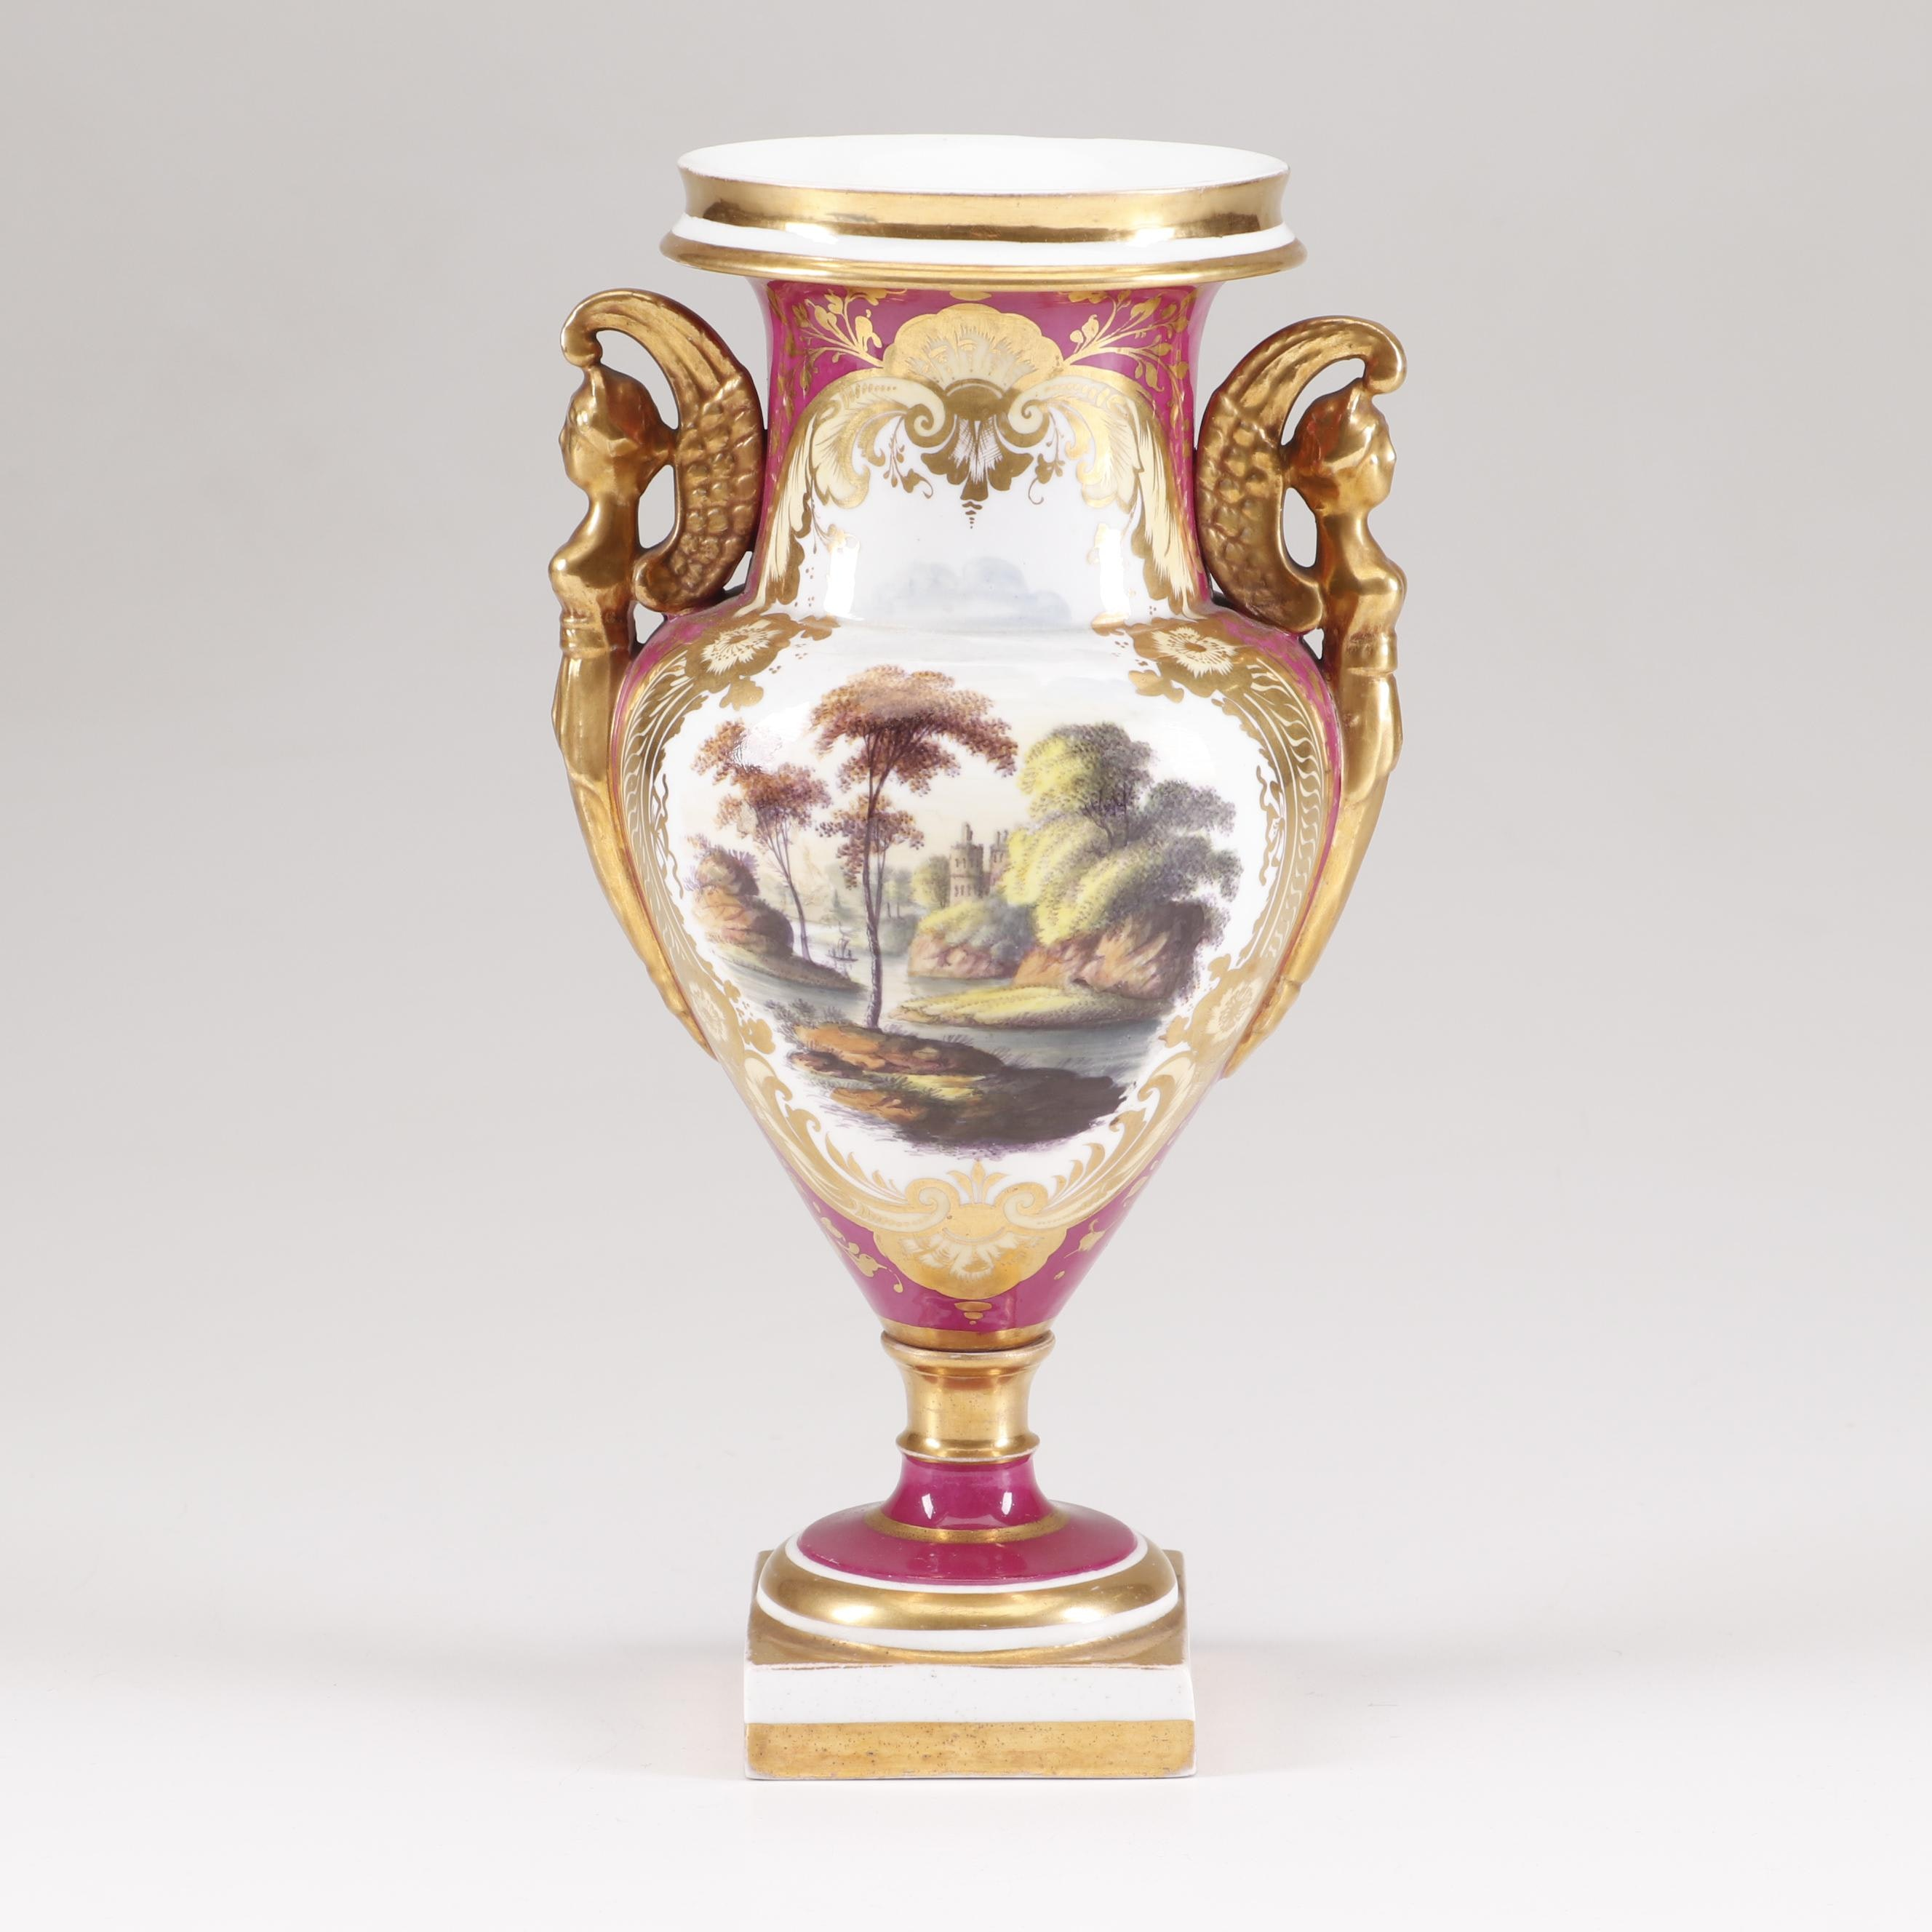 Hand-Painted Bolted Sèvres Style Footed Vase, Late 19th to Early 20th Century